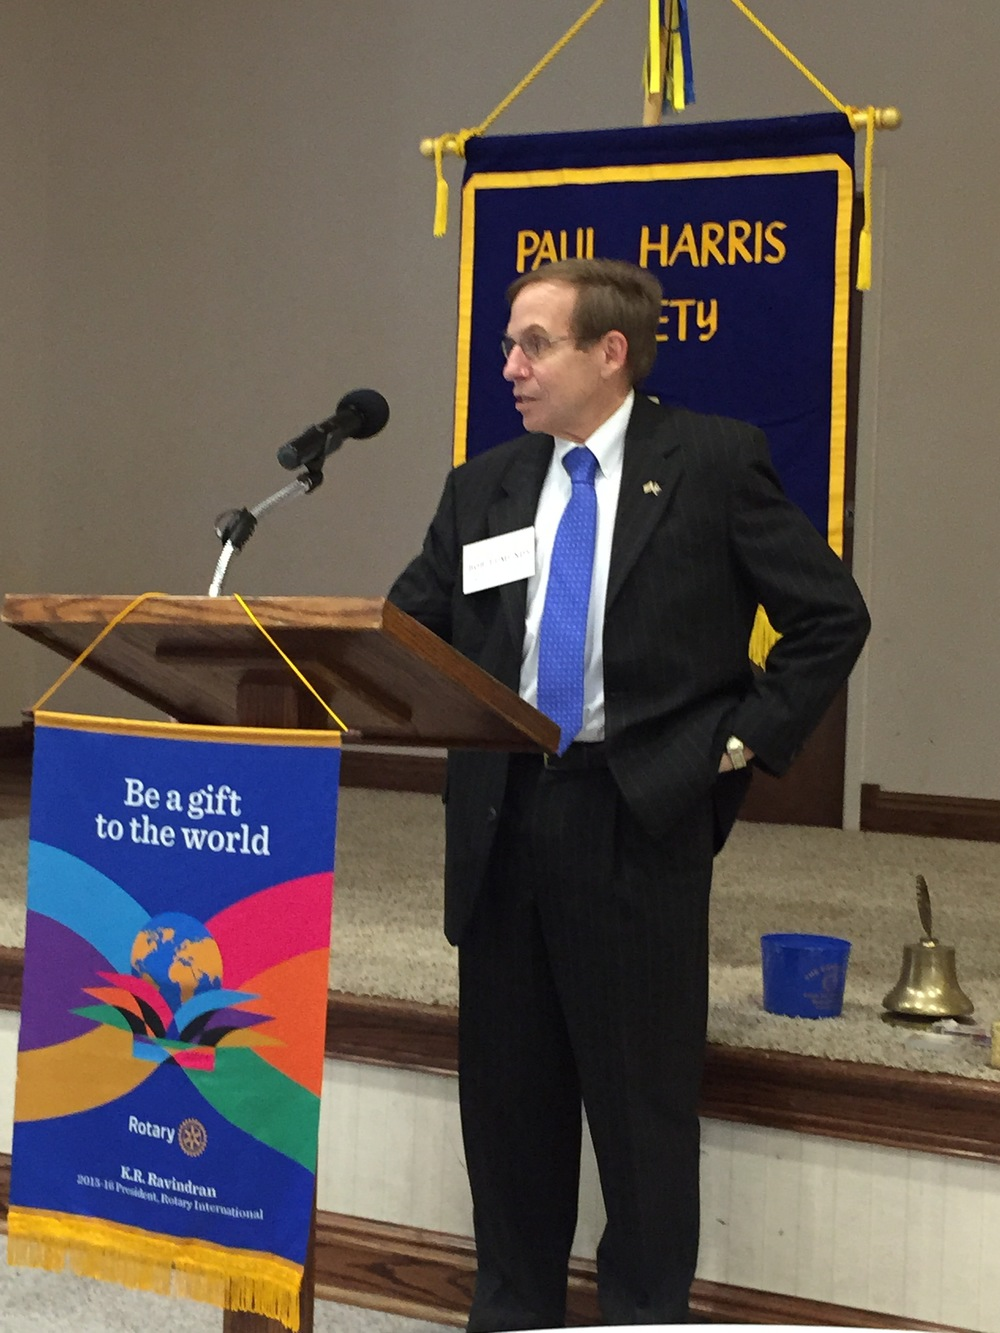 Justice Edmunds Justice Edmunds speaking to Siler City Rotary, 21 September 2015.